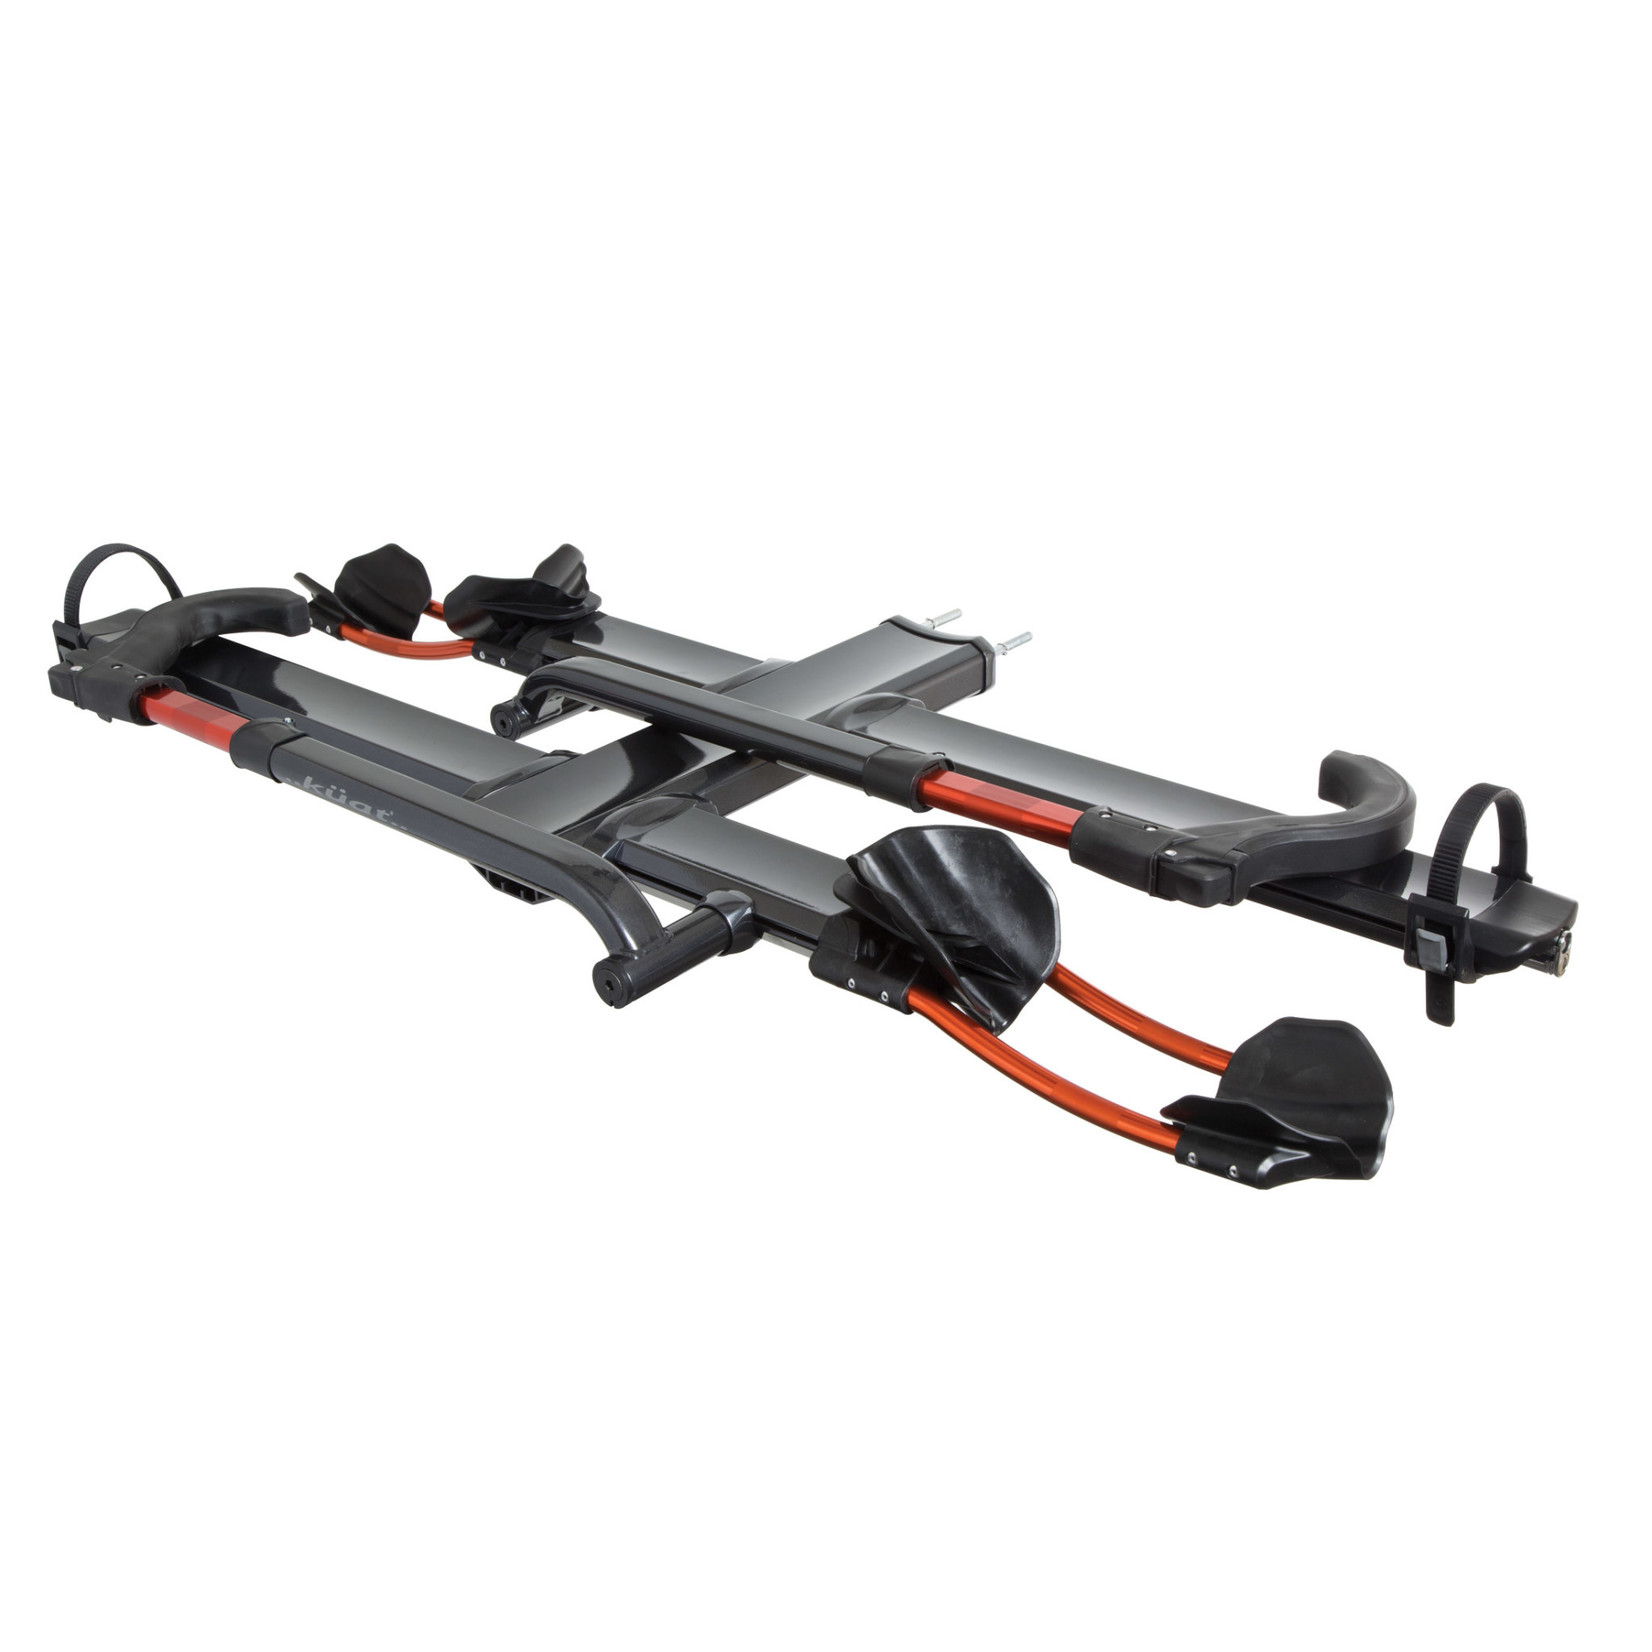 Kuat Rack Kuat NV 2.0 Add-On 2 bikes 2'' Receiver only  Gray Metalic and Orange Anodize